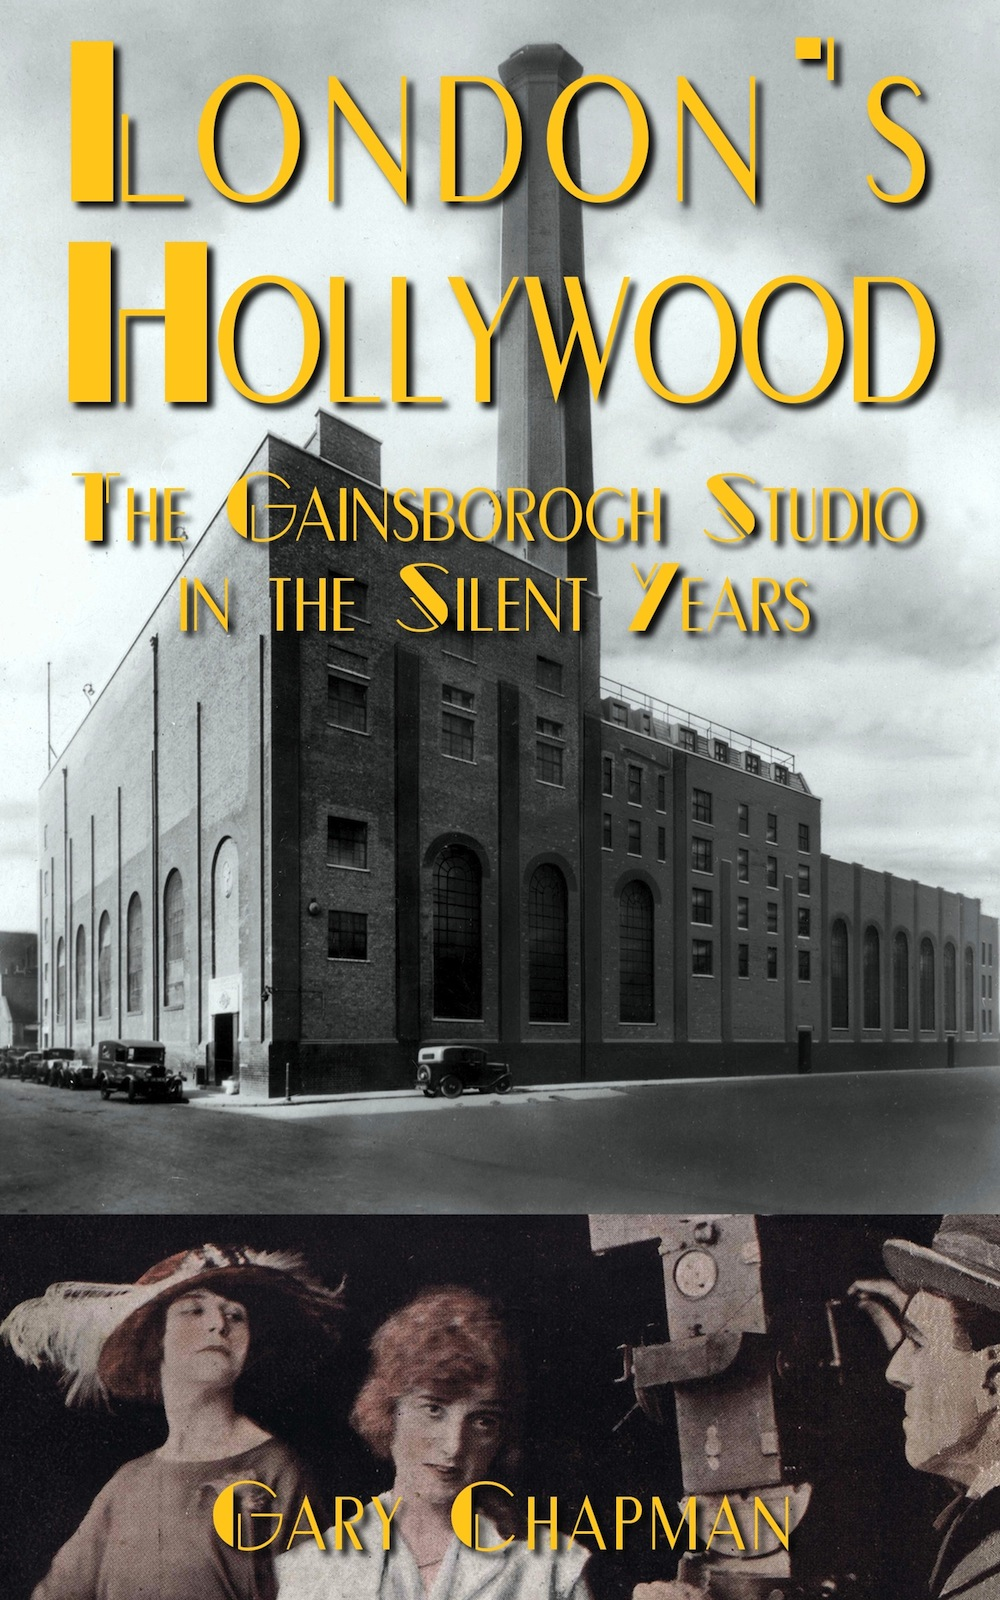 London's Hollywood: The Gainsborough Studio in the Silent Years by Gary Chapman book cover